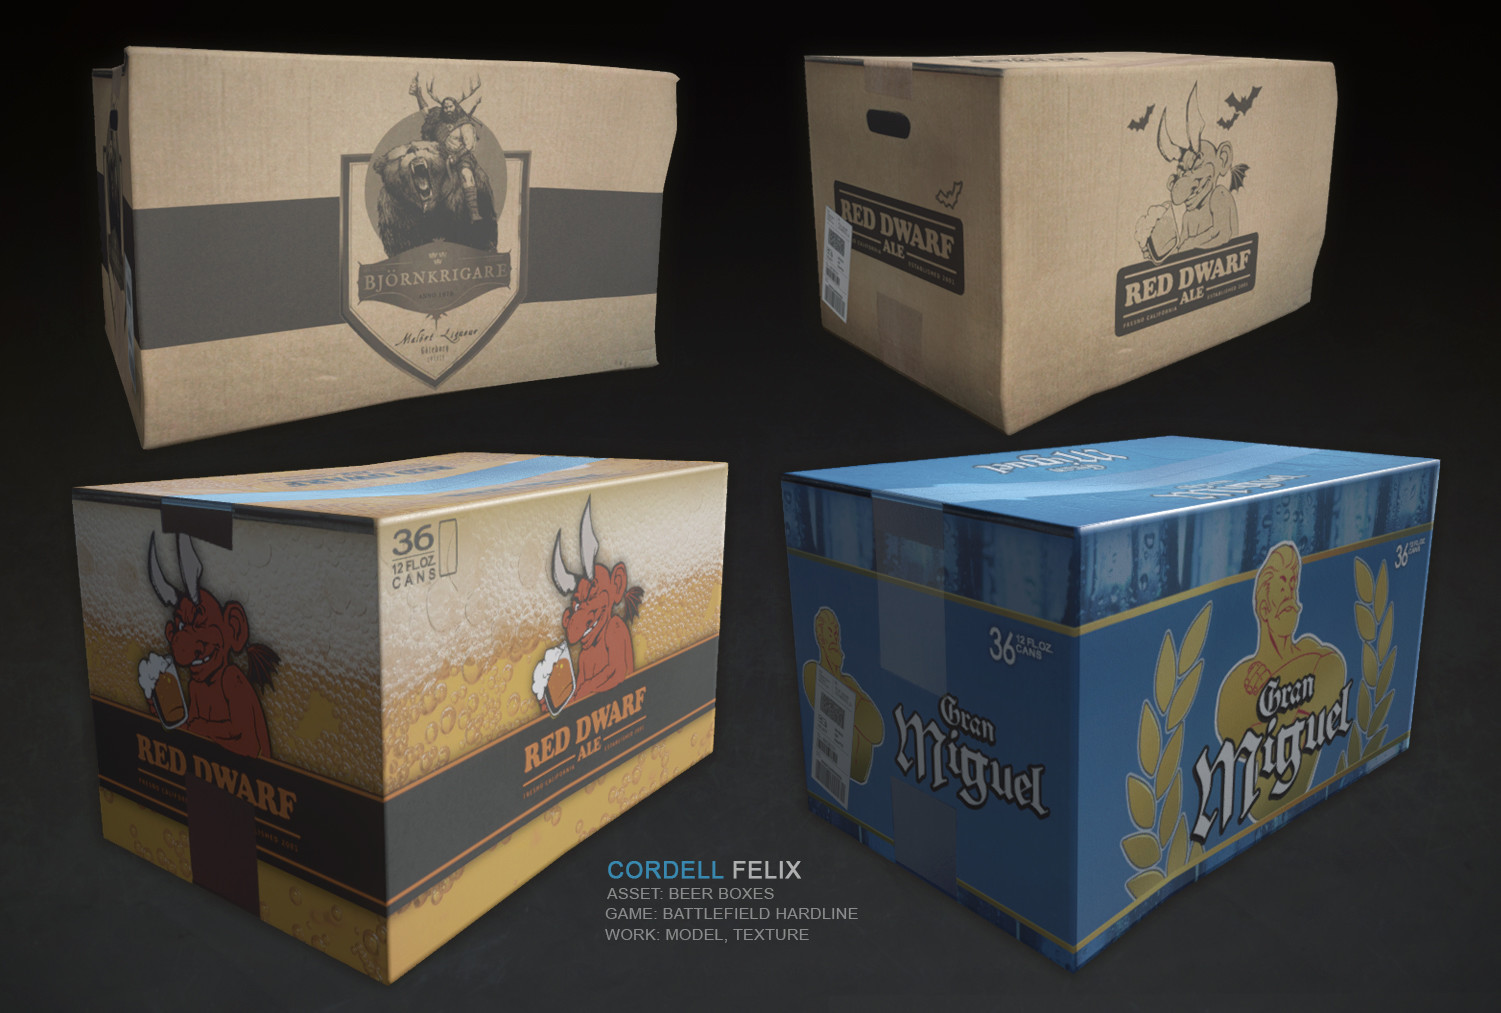 Cordell felix beerboxes bfh